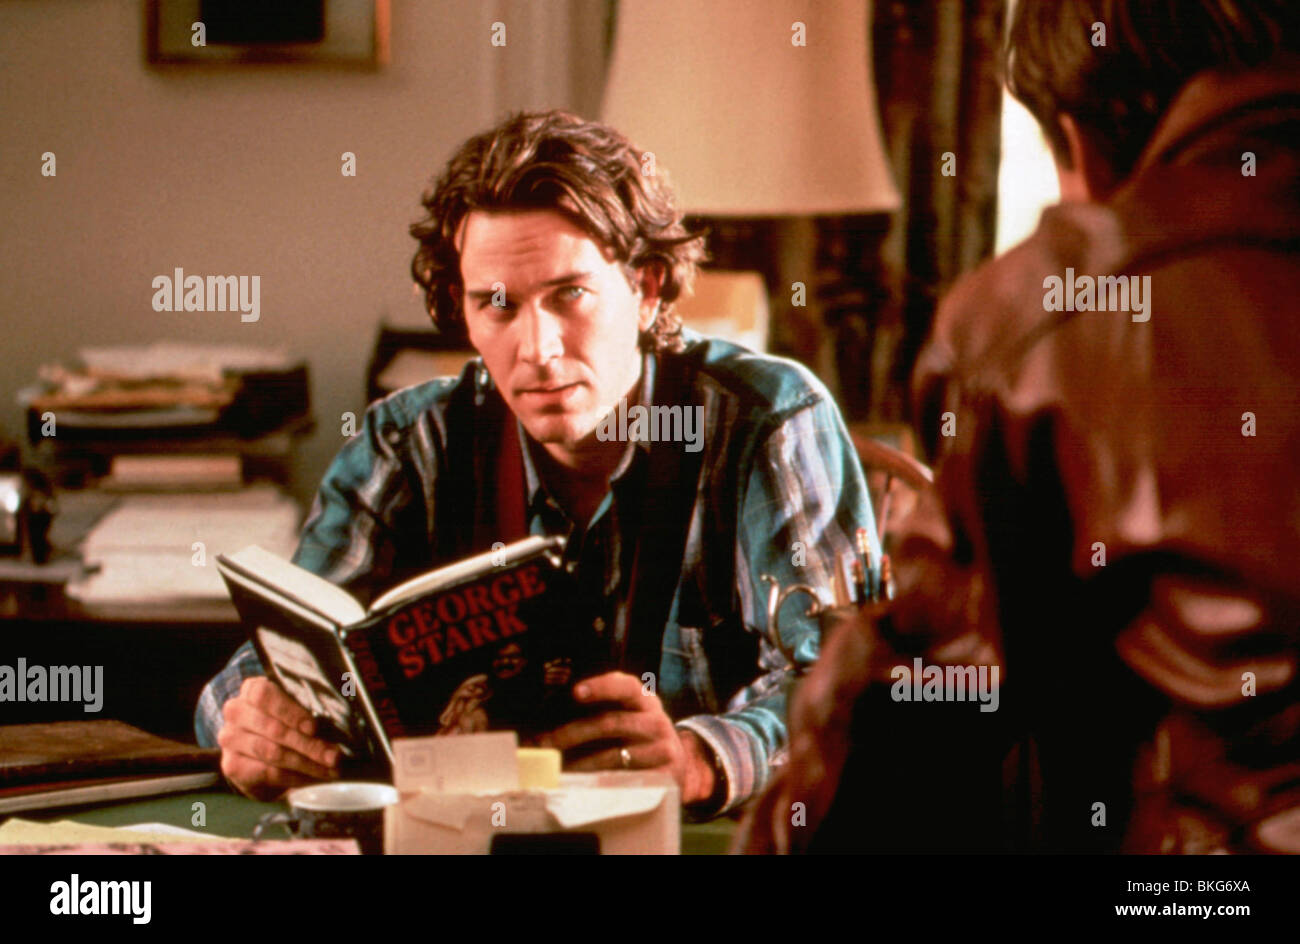 L'OBSCURITÉ DE LA MOITIÉ (1993) TIMOTHY HUTTON DRKH 023 Photo Stock